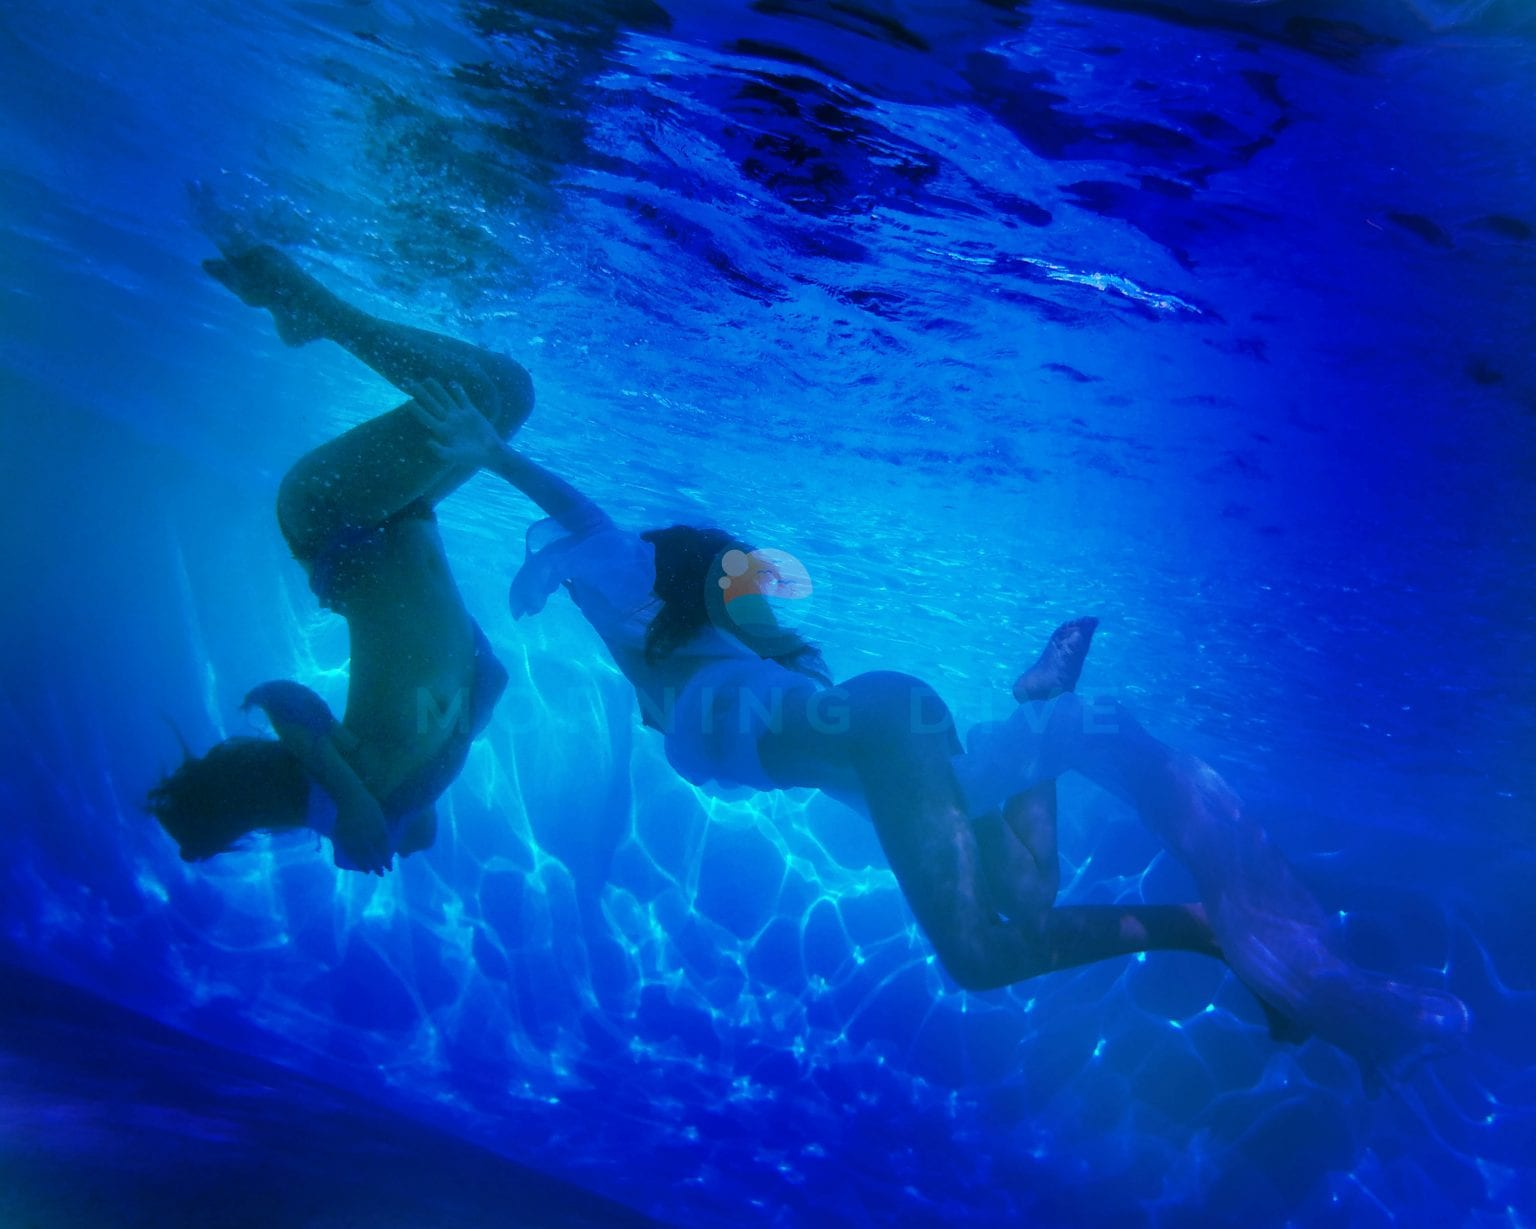 underwater photography two women